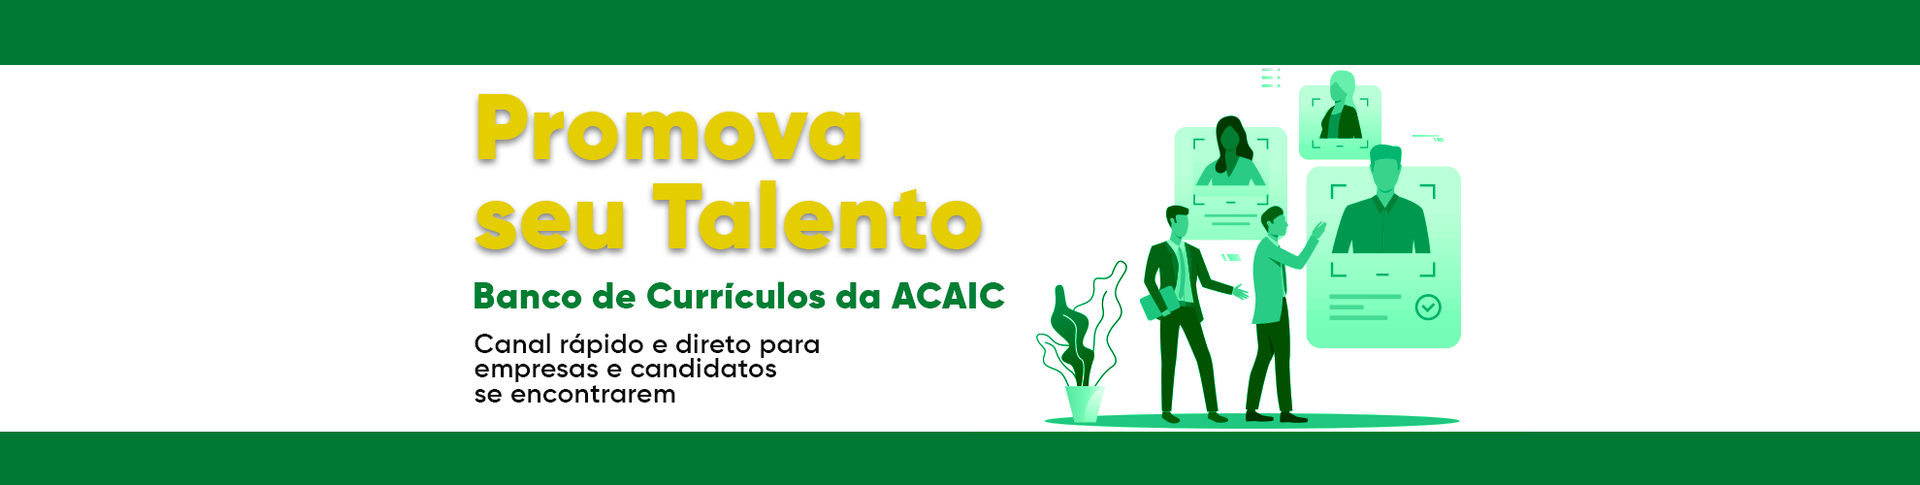 acaic-novo-banner-curriculos.png